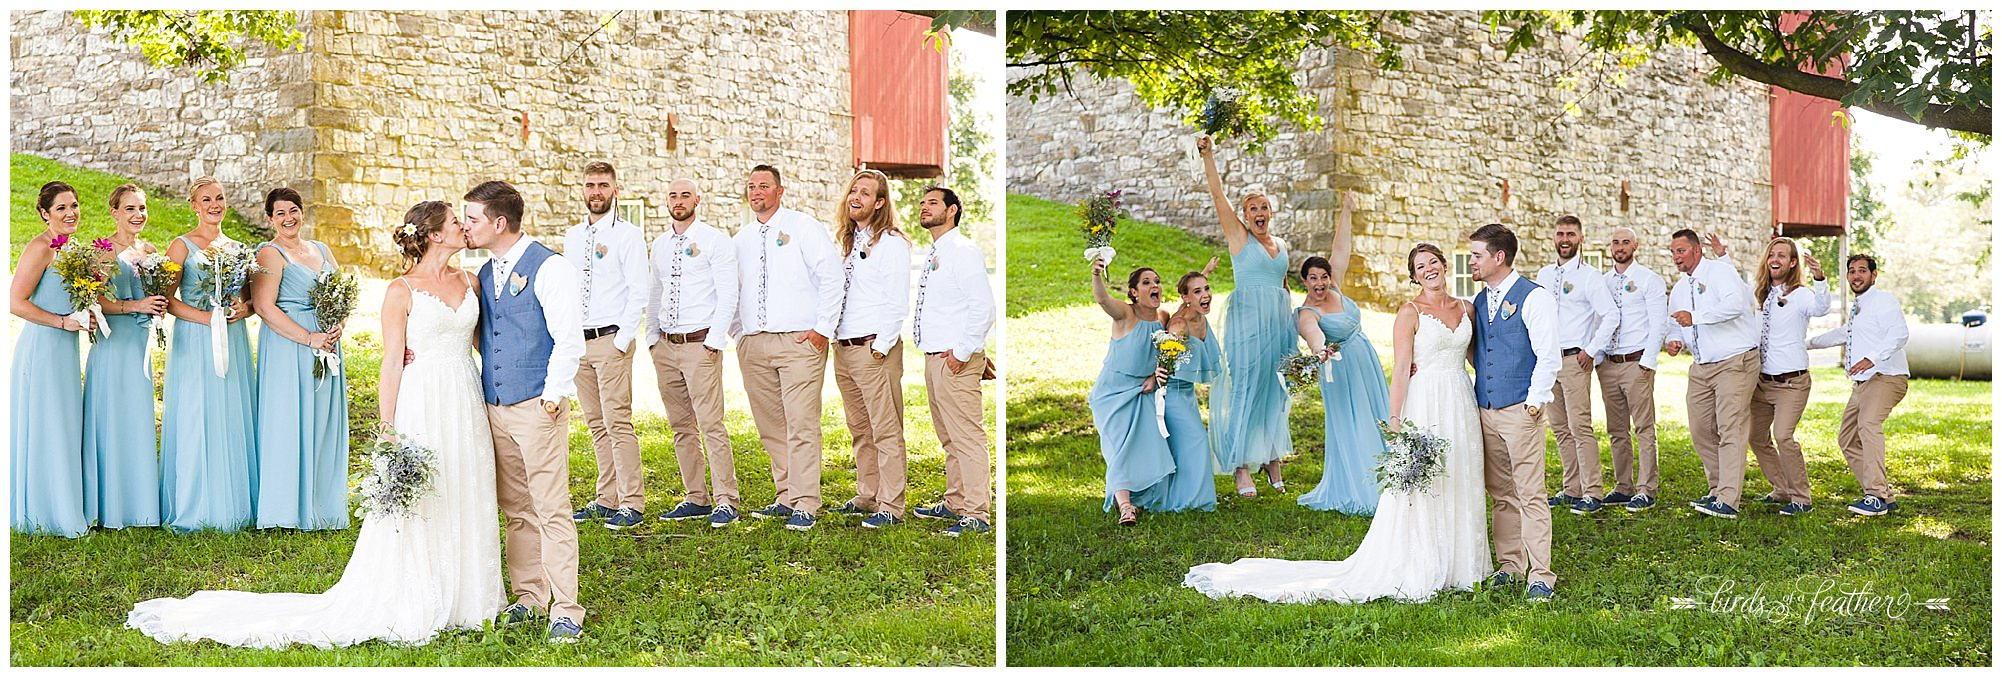 Birds of a Feather Photography Rodale Institute Kutztown Pa Wedding Photographer 21